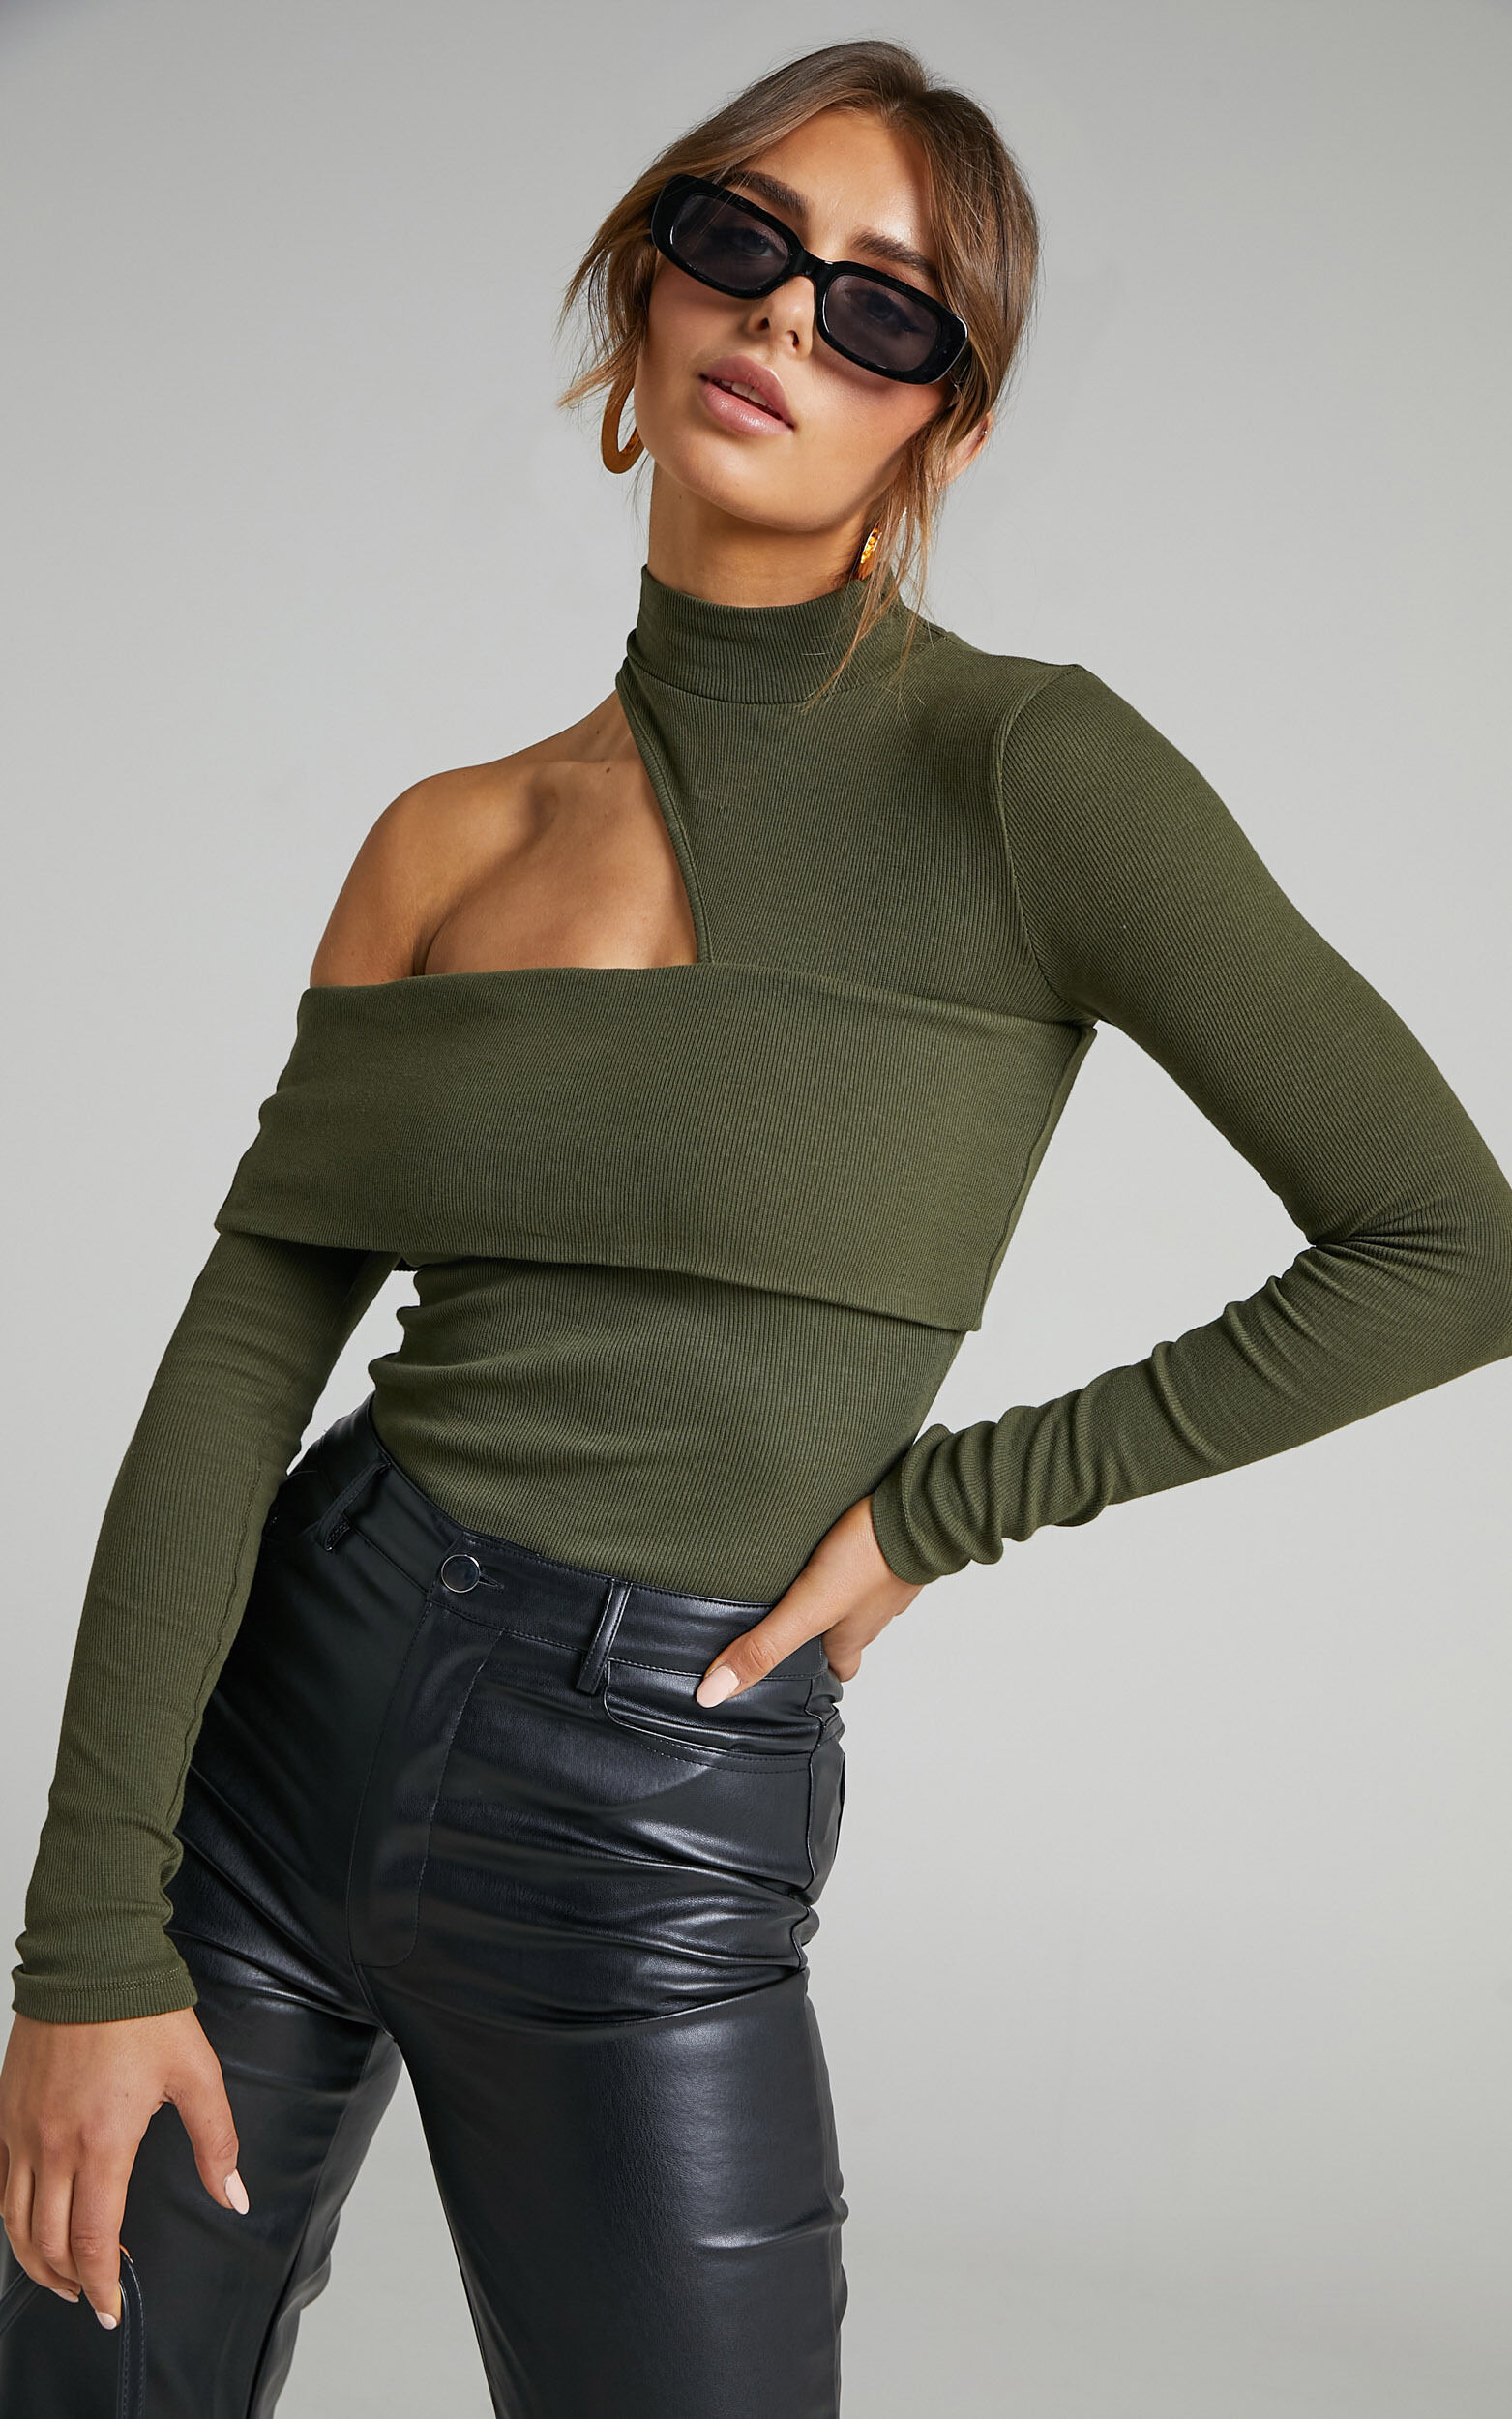 Kiefer Asymmetric Cutout Top in Khaki - 06, GRN2, super-hi-res image number null